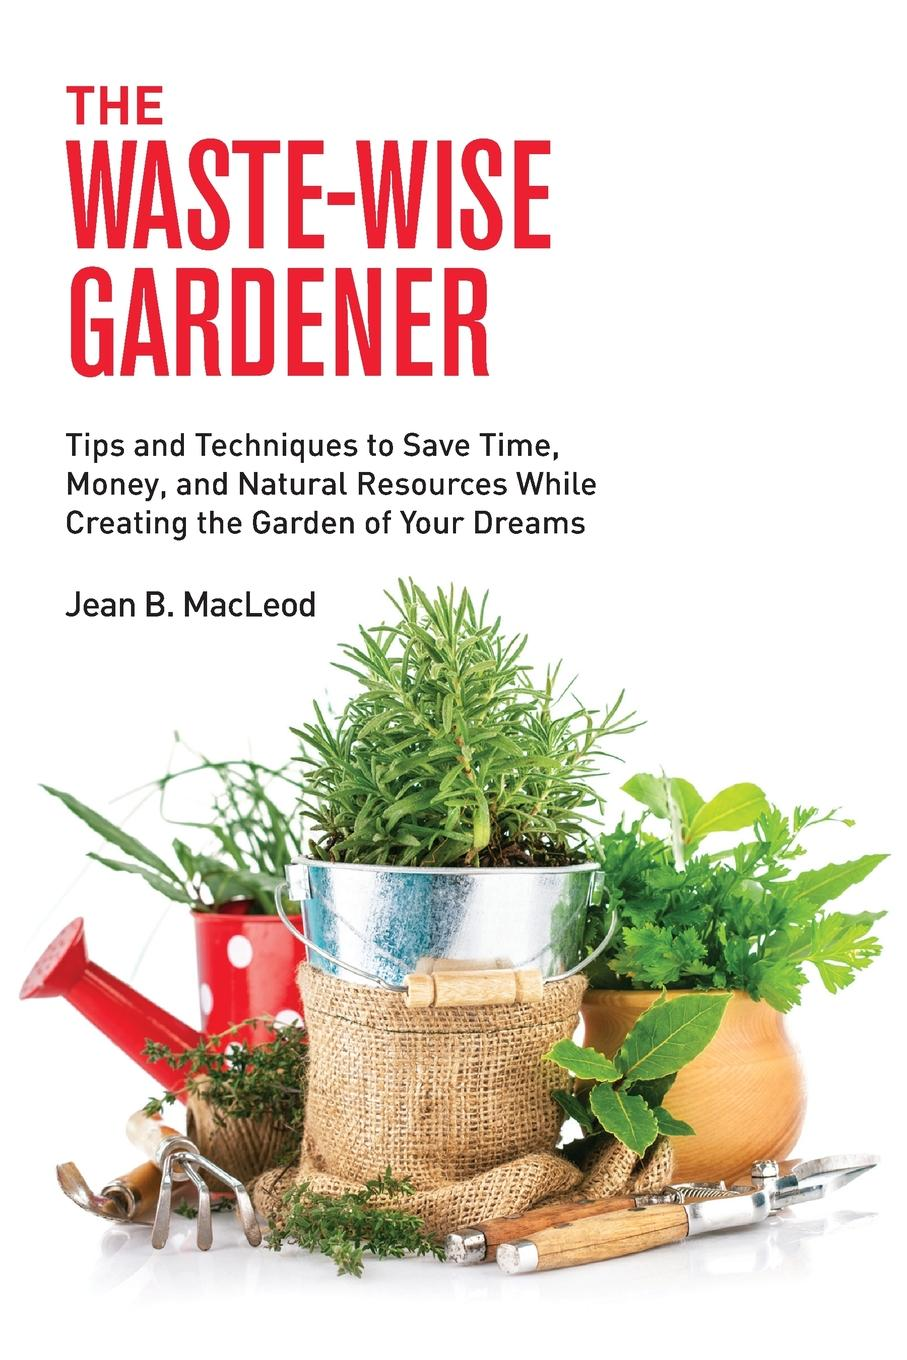 Jean B MacLeod The Waste-Wise Gardener. Tips and Techniques to Save Time, Money, and Natural Resources While Creating the Garden of Your Dreams